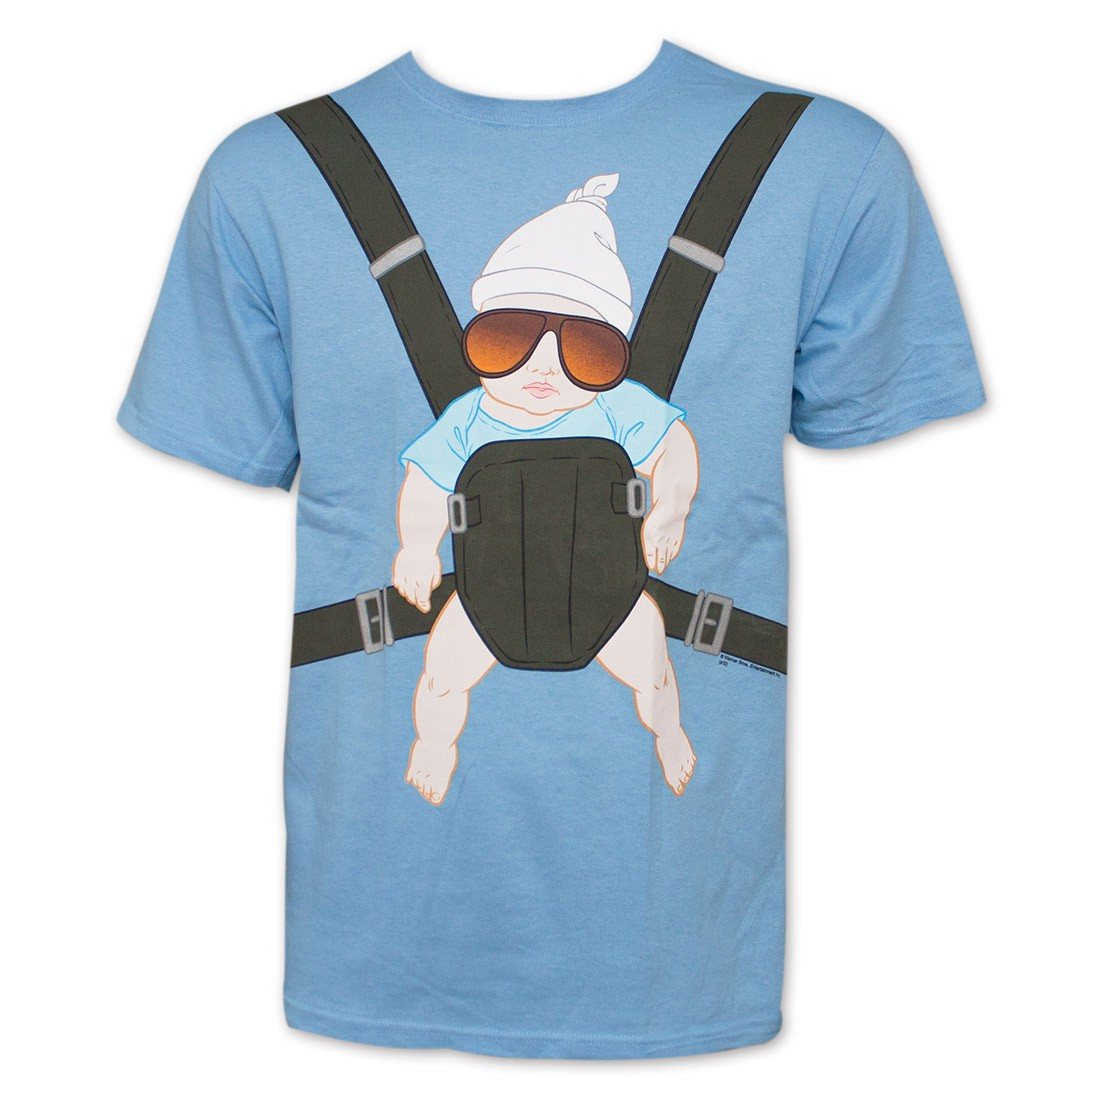 The Hangover Baby Carrier Men's Blue Graphic T-Shirt